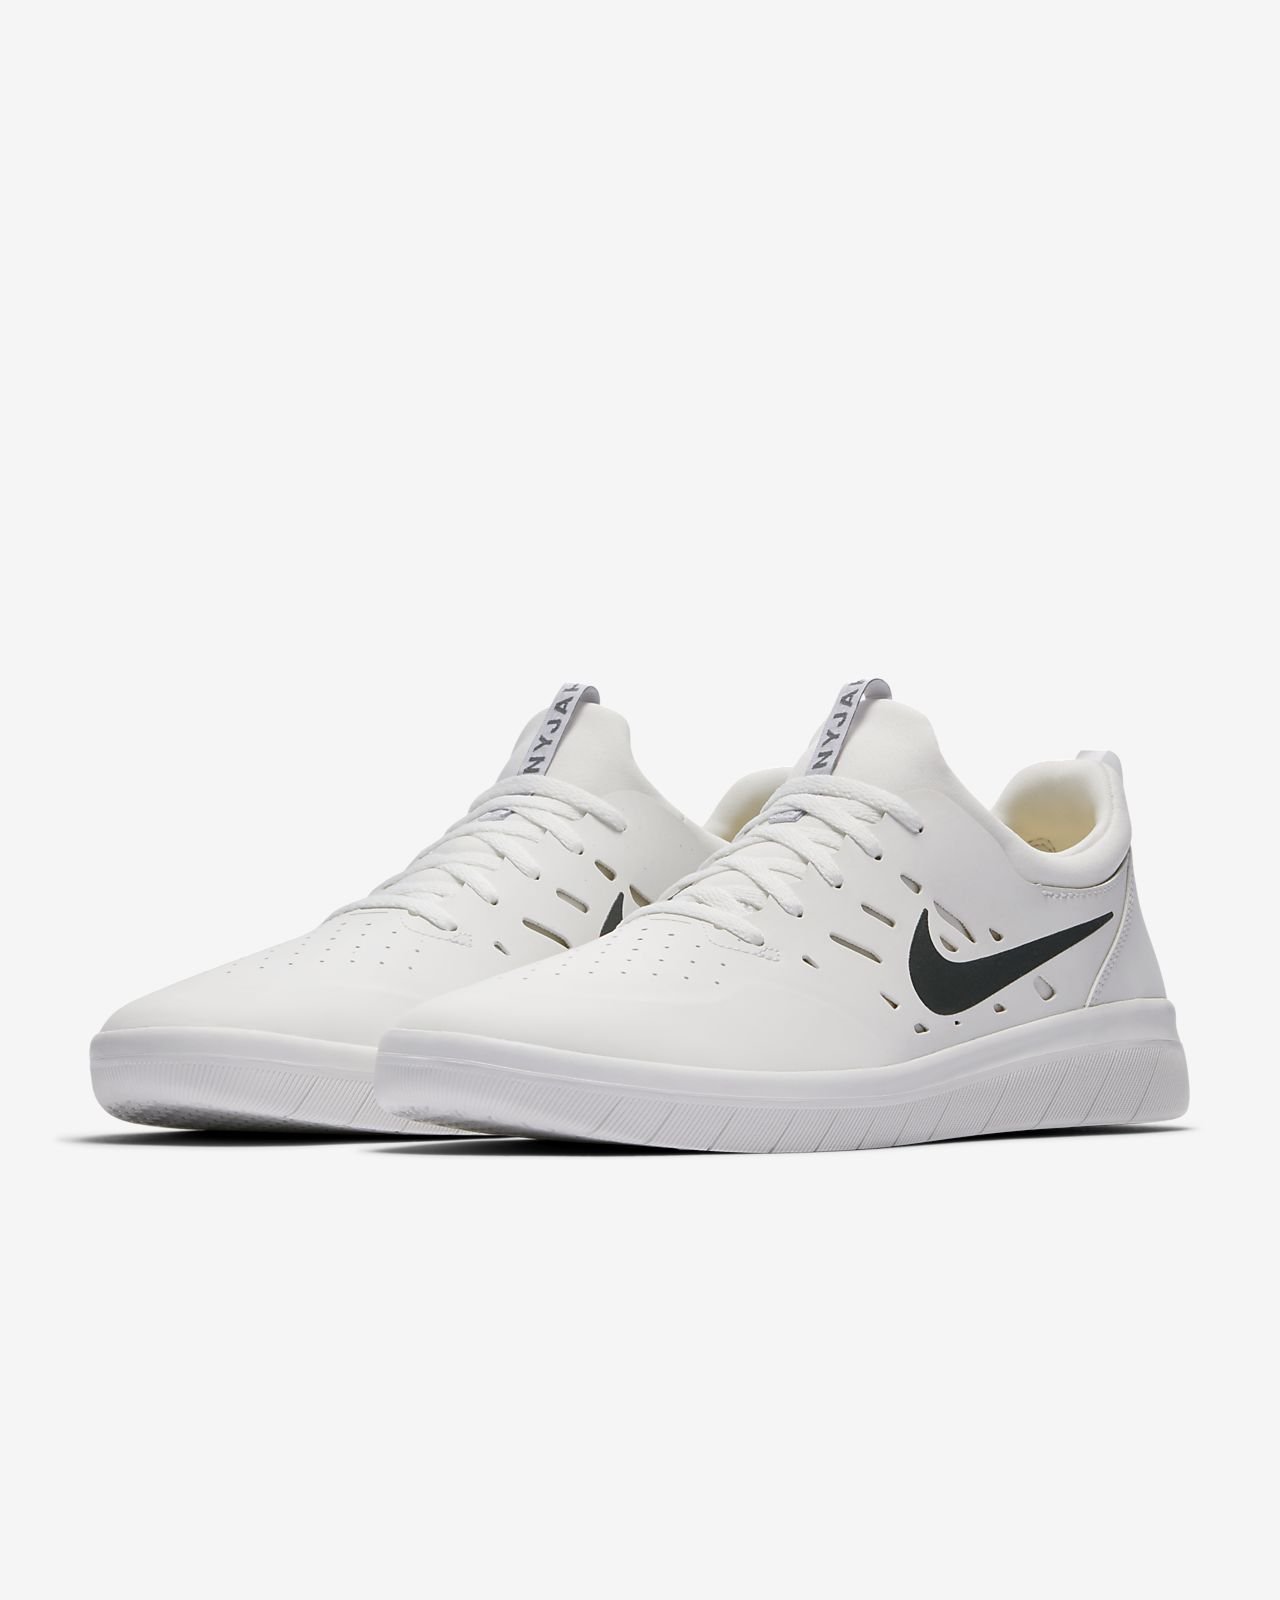 Nike SB Zoom Janoski Summit White Canvas Skate Shoes White, Mens Skate Shoes Mens, Skate Shoes